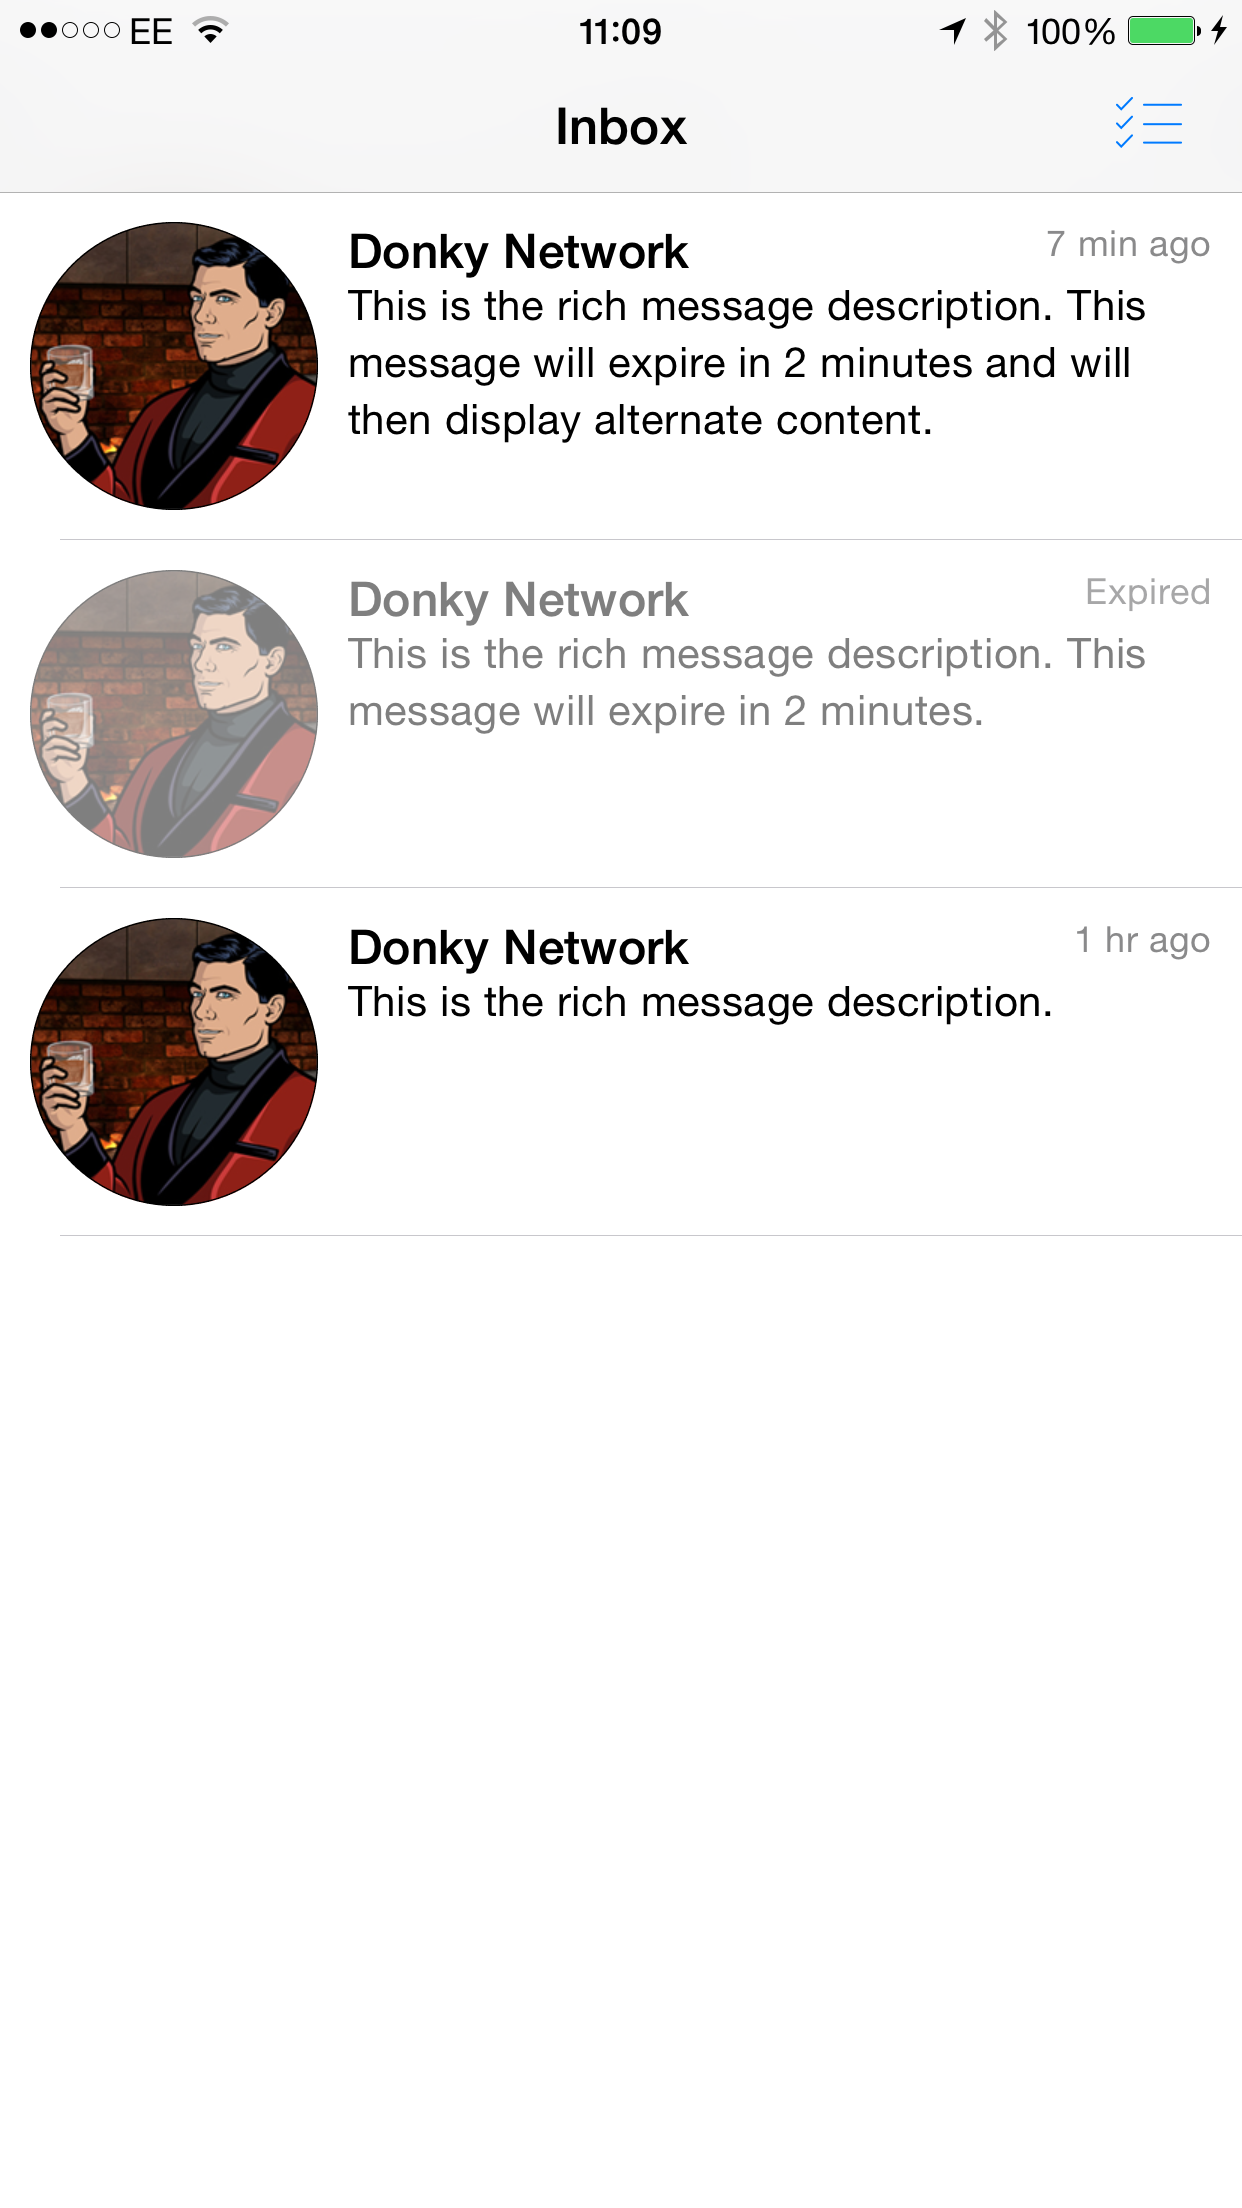 Example of what an expired message will look like. Device is iPhone 6, iOS 8.4 in Portrait.